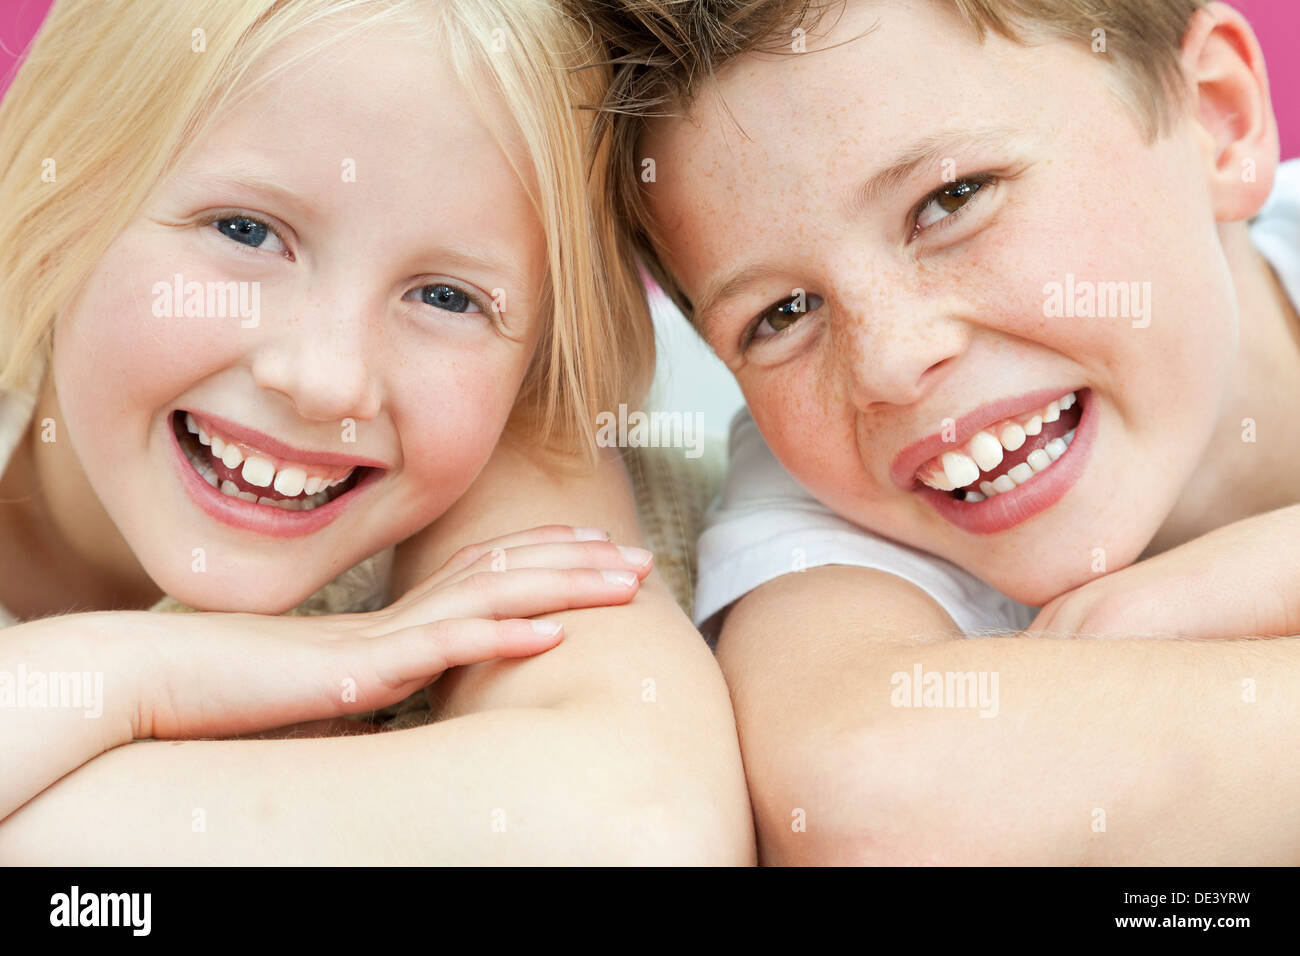 Happy boy and girl, sister and brother laughing with big toothy smiles - Stock Image